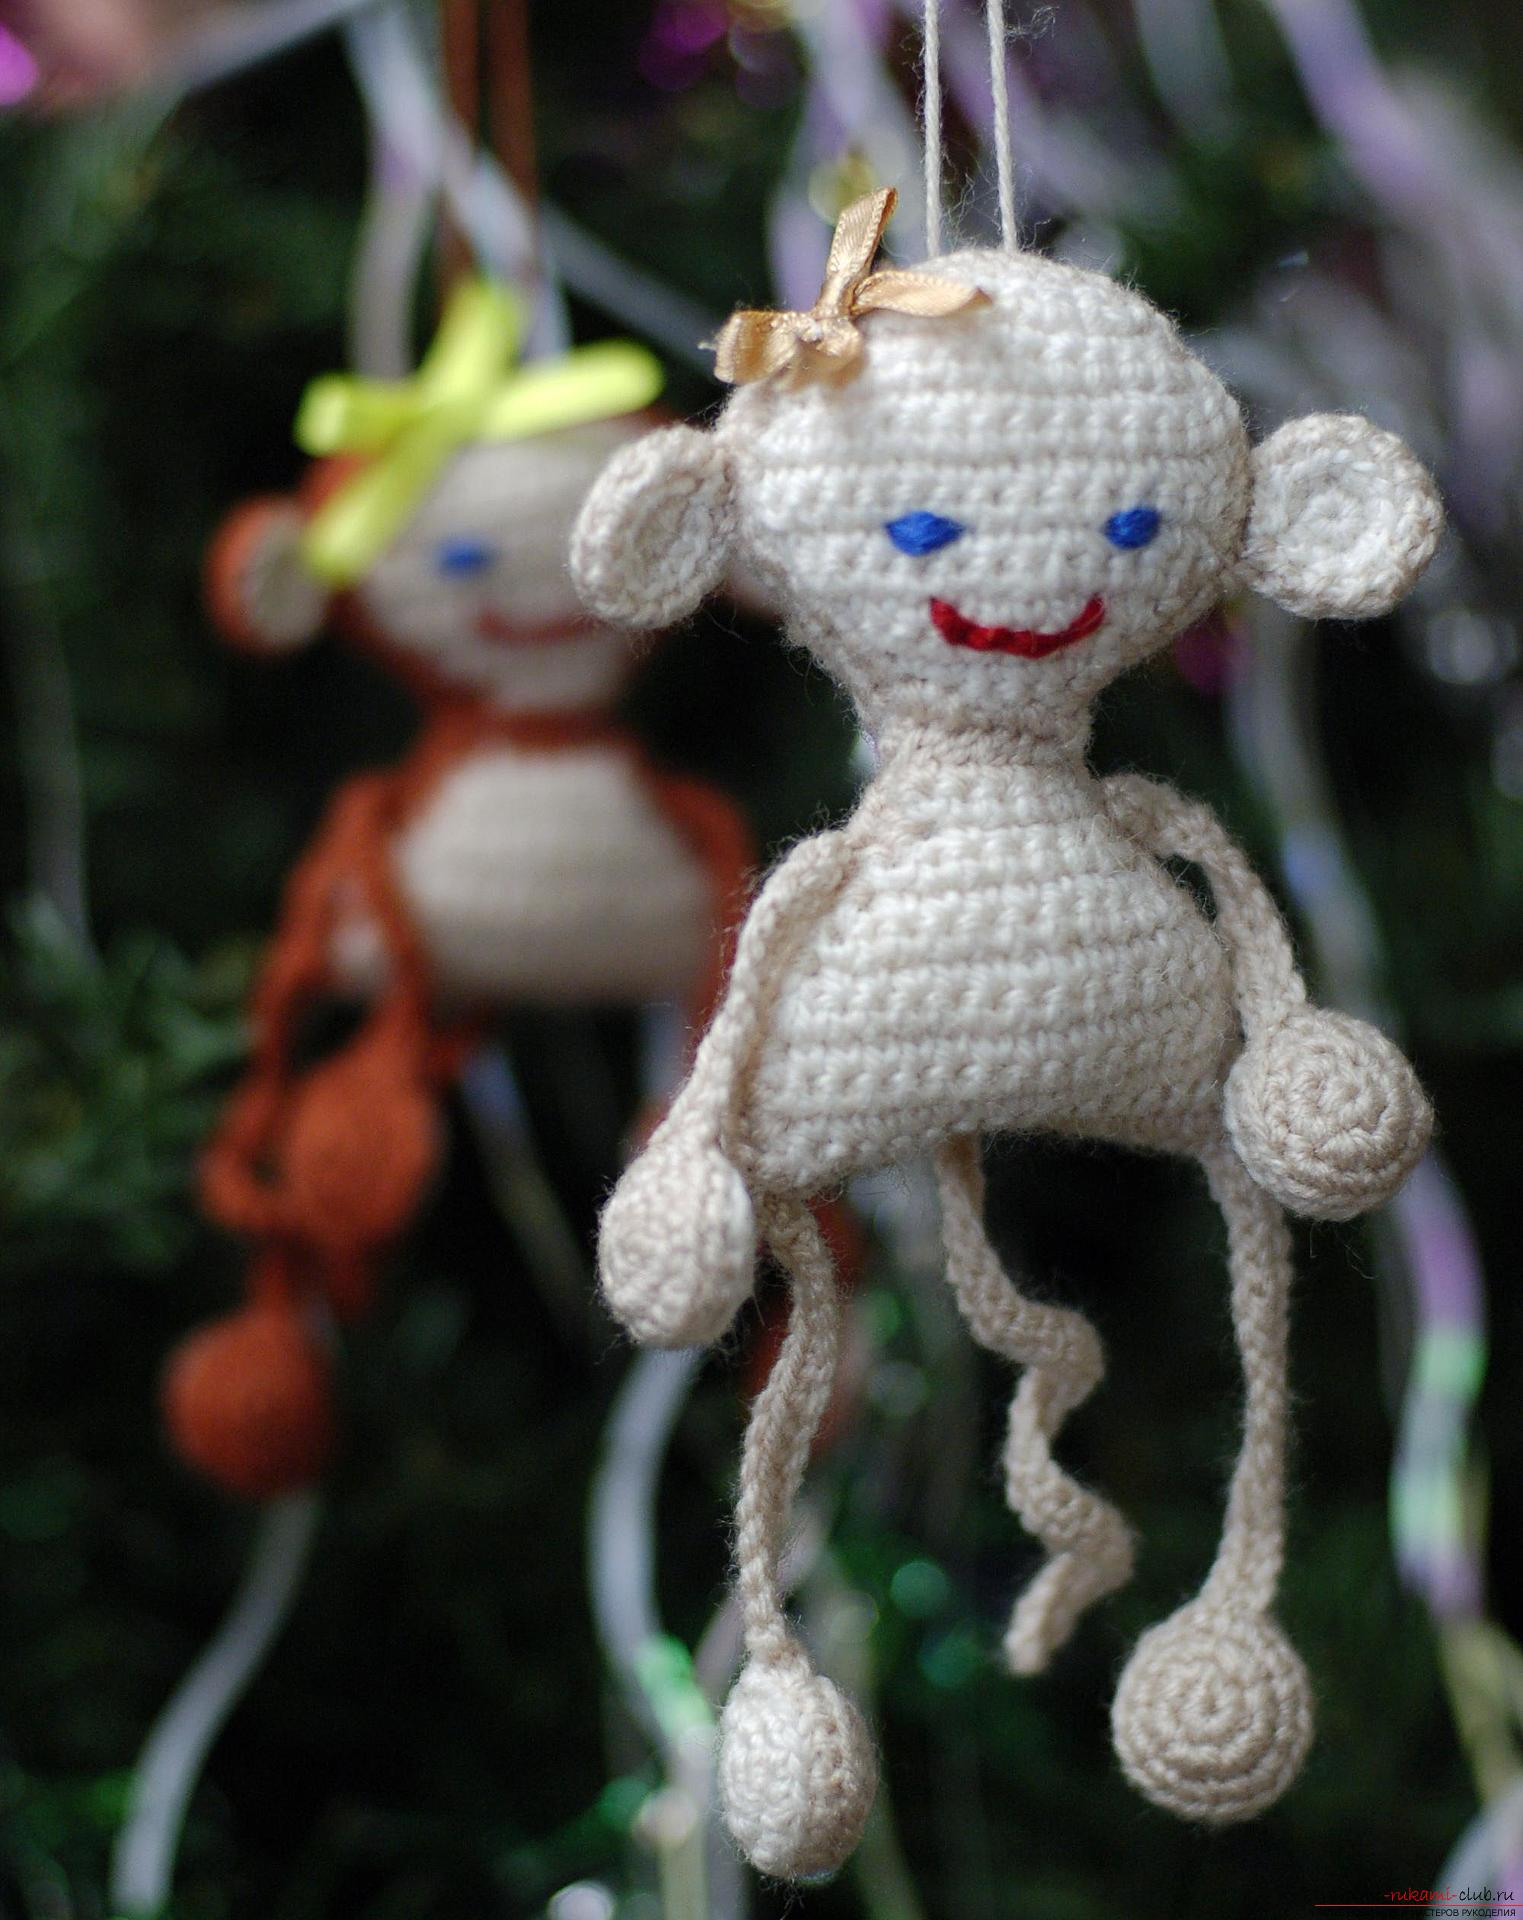 A master class with a detailed description and photo will show how to crochet a toy-symbol of the year - a monkey on a Christmas tree. Photo №25